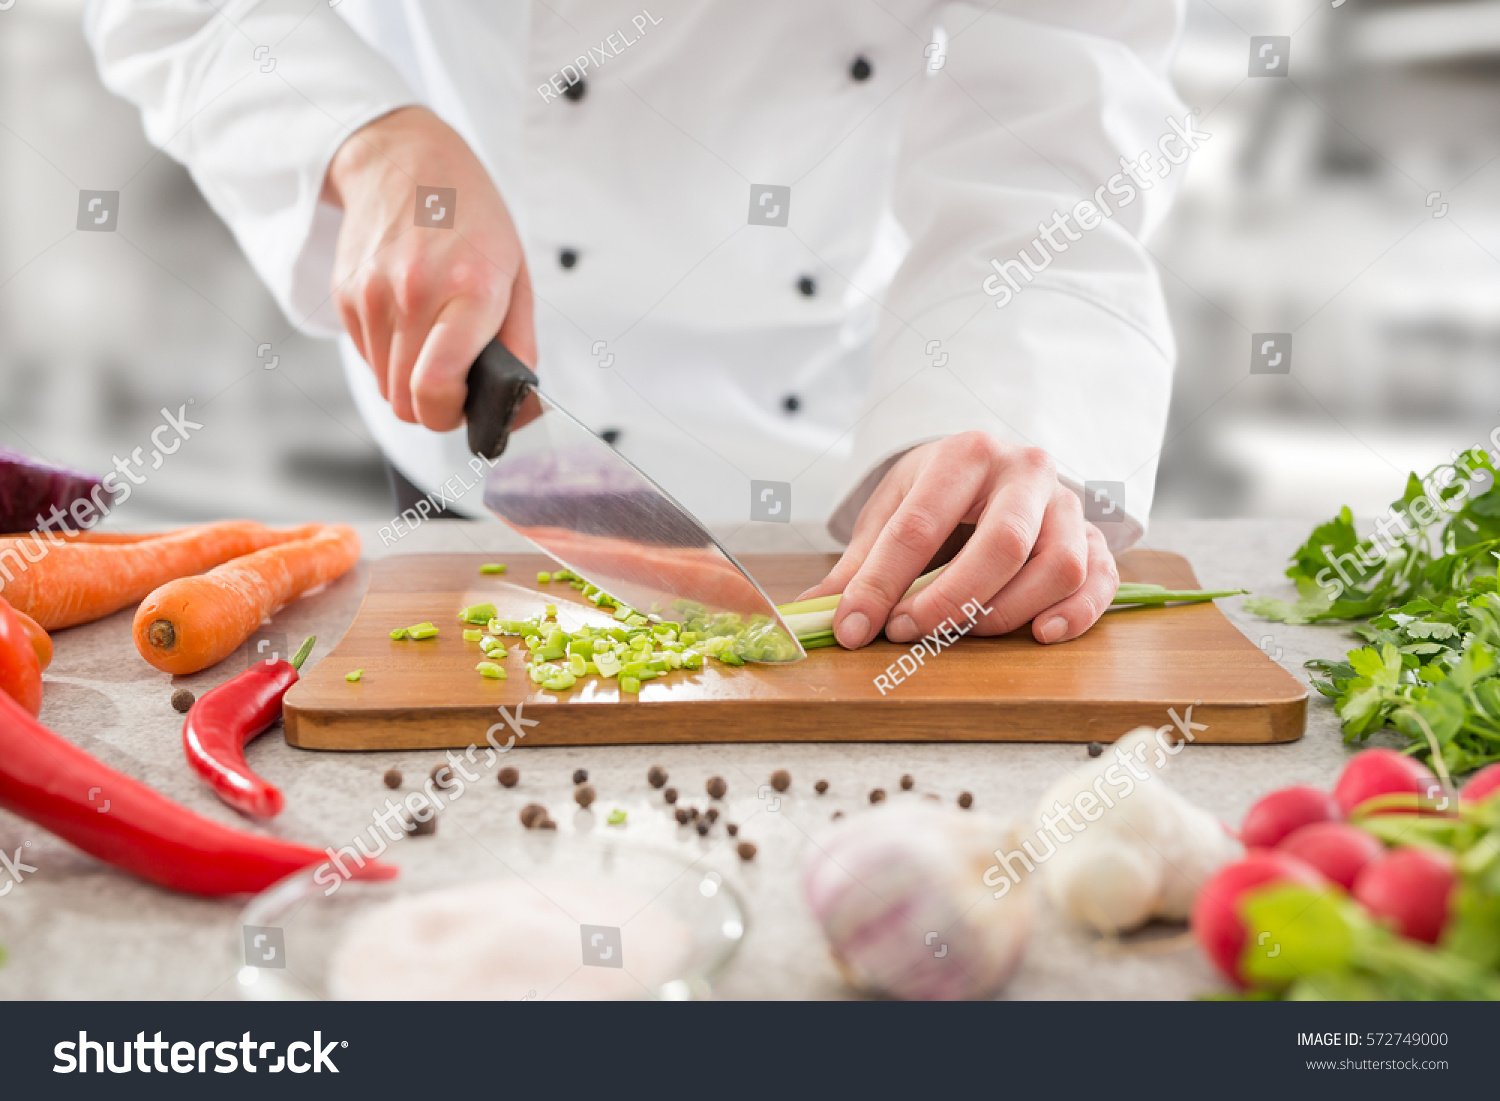 Chef cooking food kitchen restaurant cutting stock photo for Fresh chef kitchen